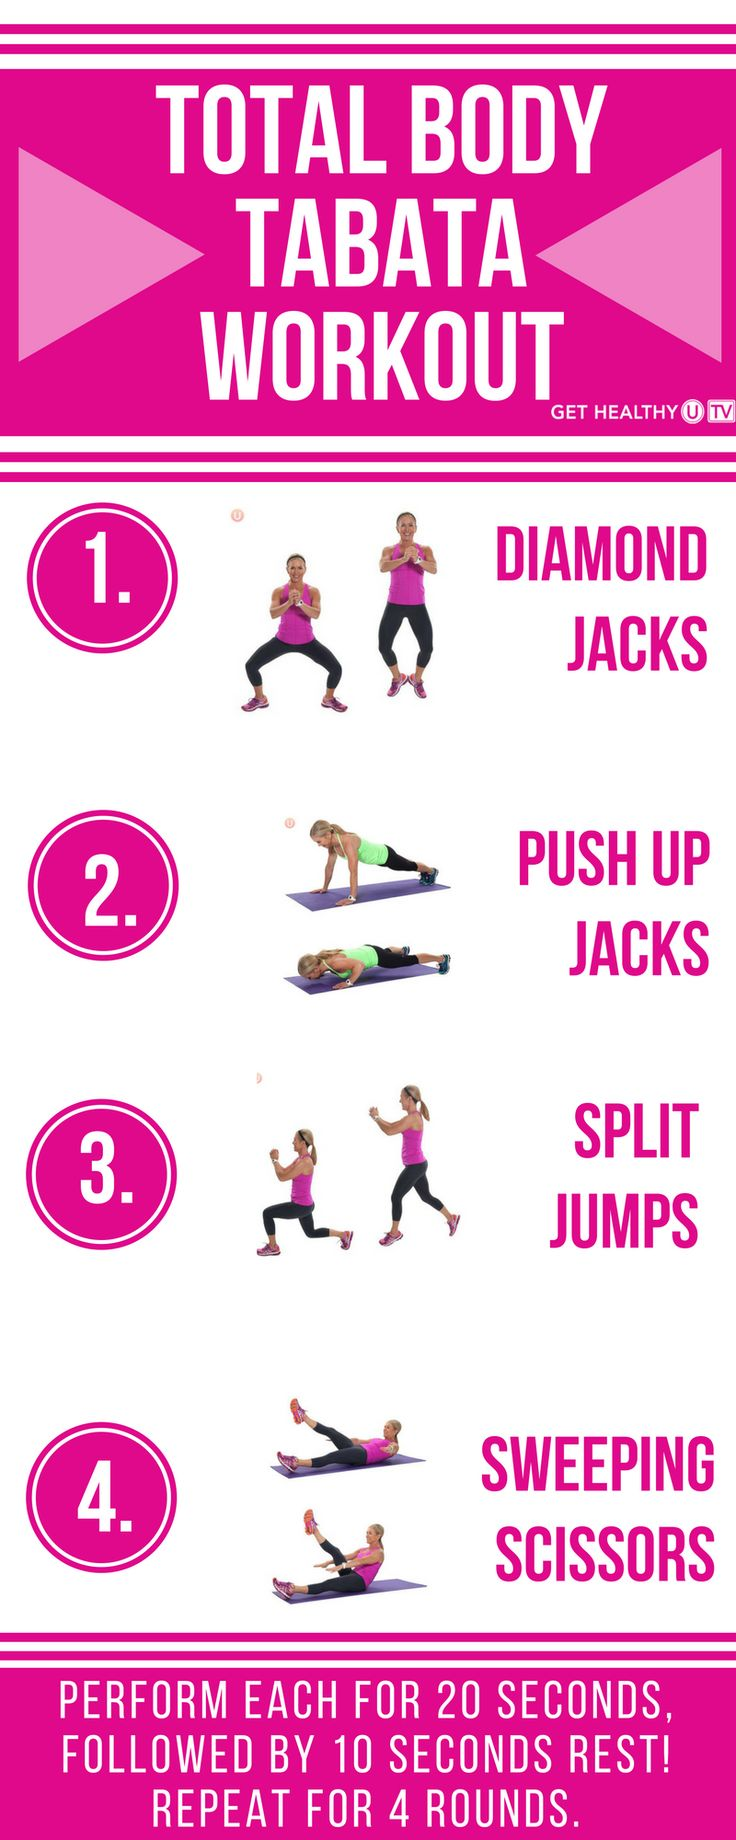 1000+ images about Workout Tips on Pinterest | Trainers ...